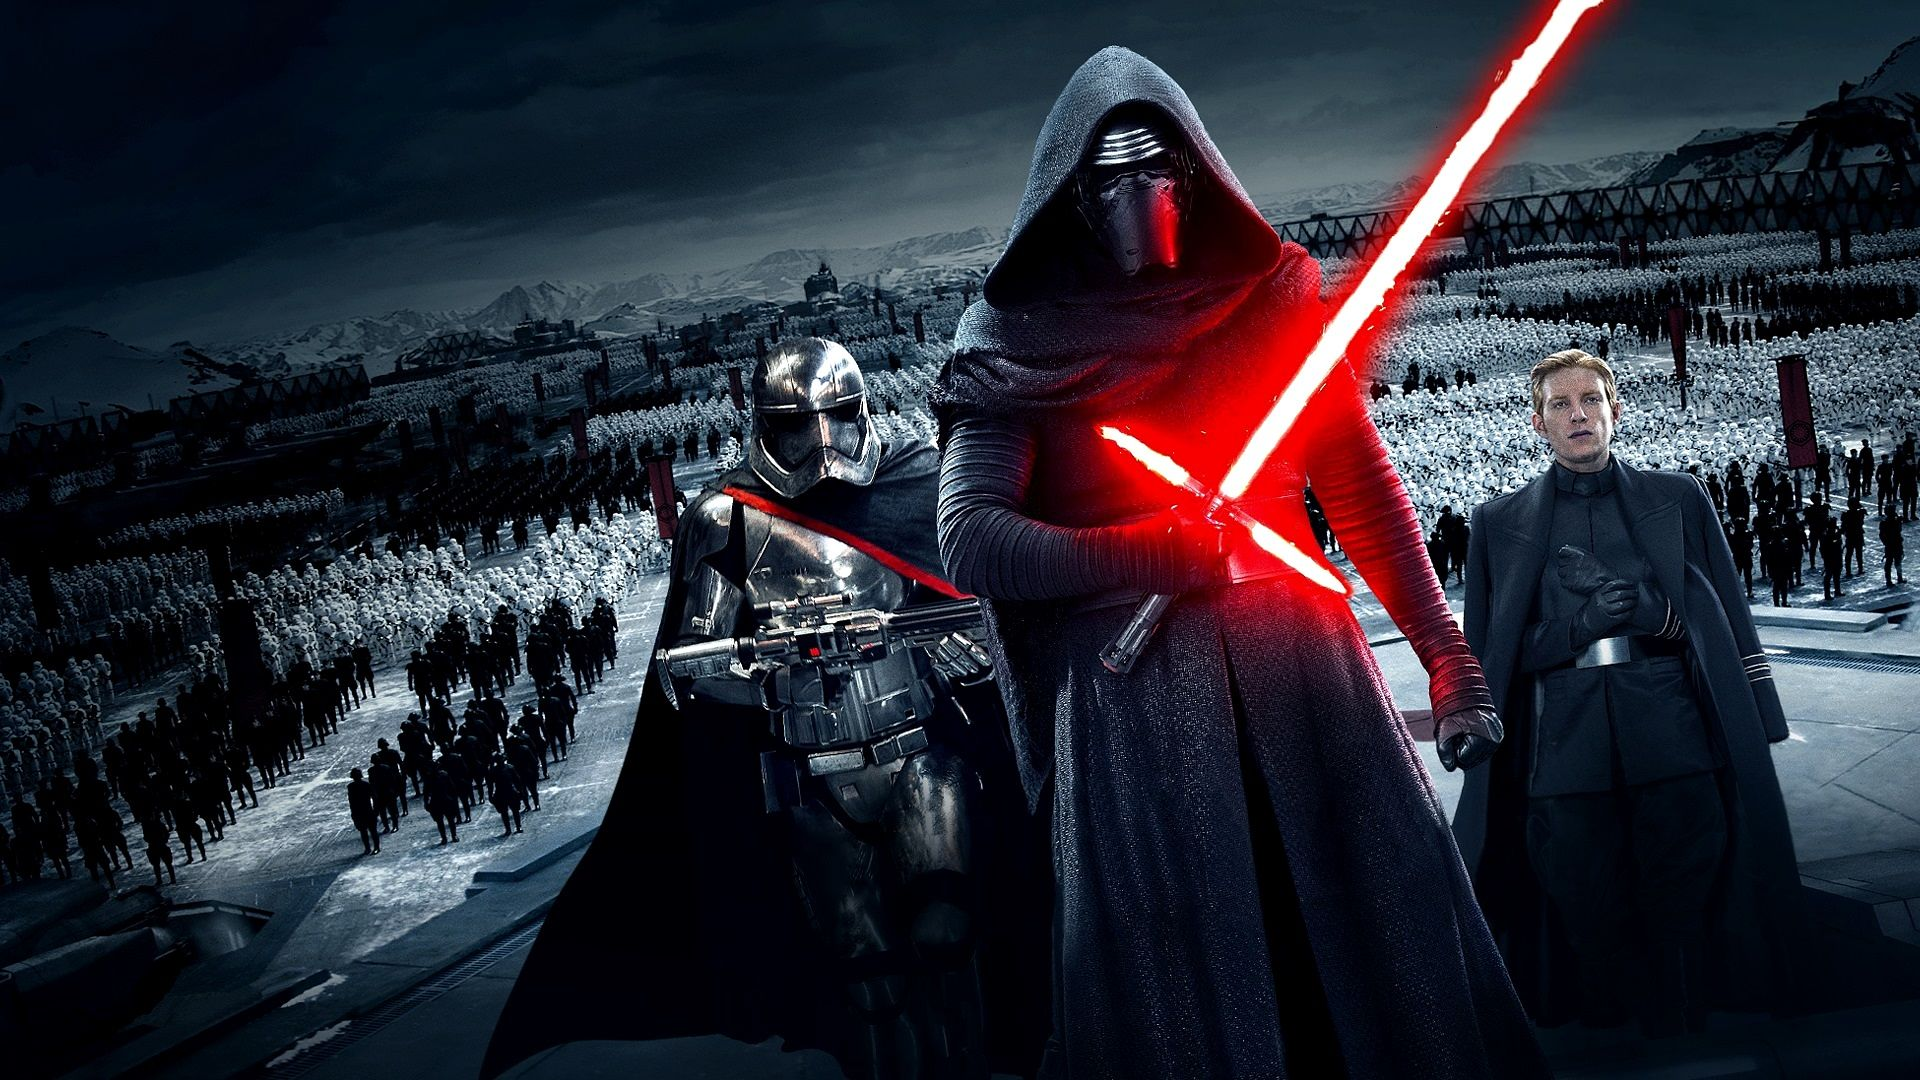 star-wars-7-the-force-awakens-could-kylo-ren-really-be-a-skywalker.jpg